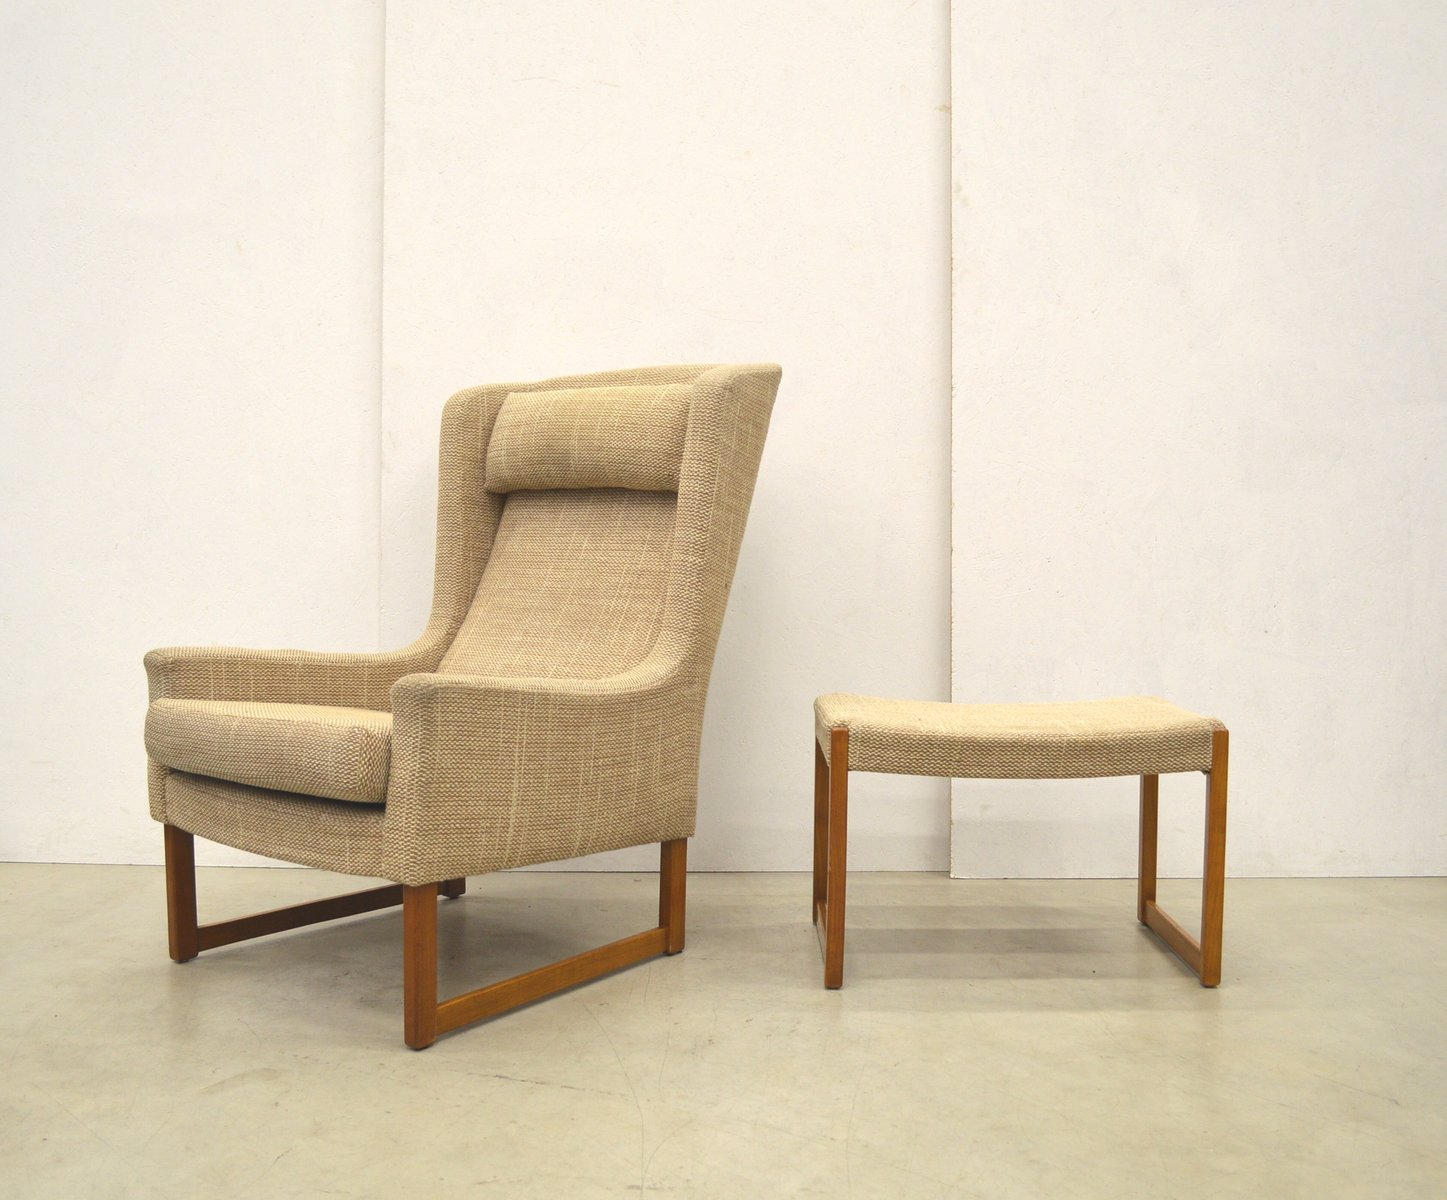 Kill International Rudolf B Glatzel Ledersessel Wingbackchair Ohrensessel And Hocker Von Rudolf B Glatzel Für Kill